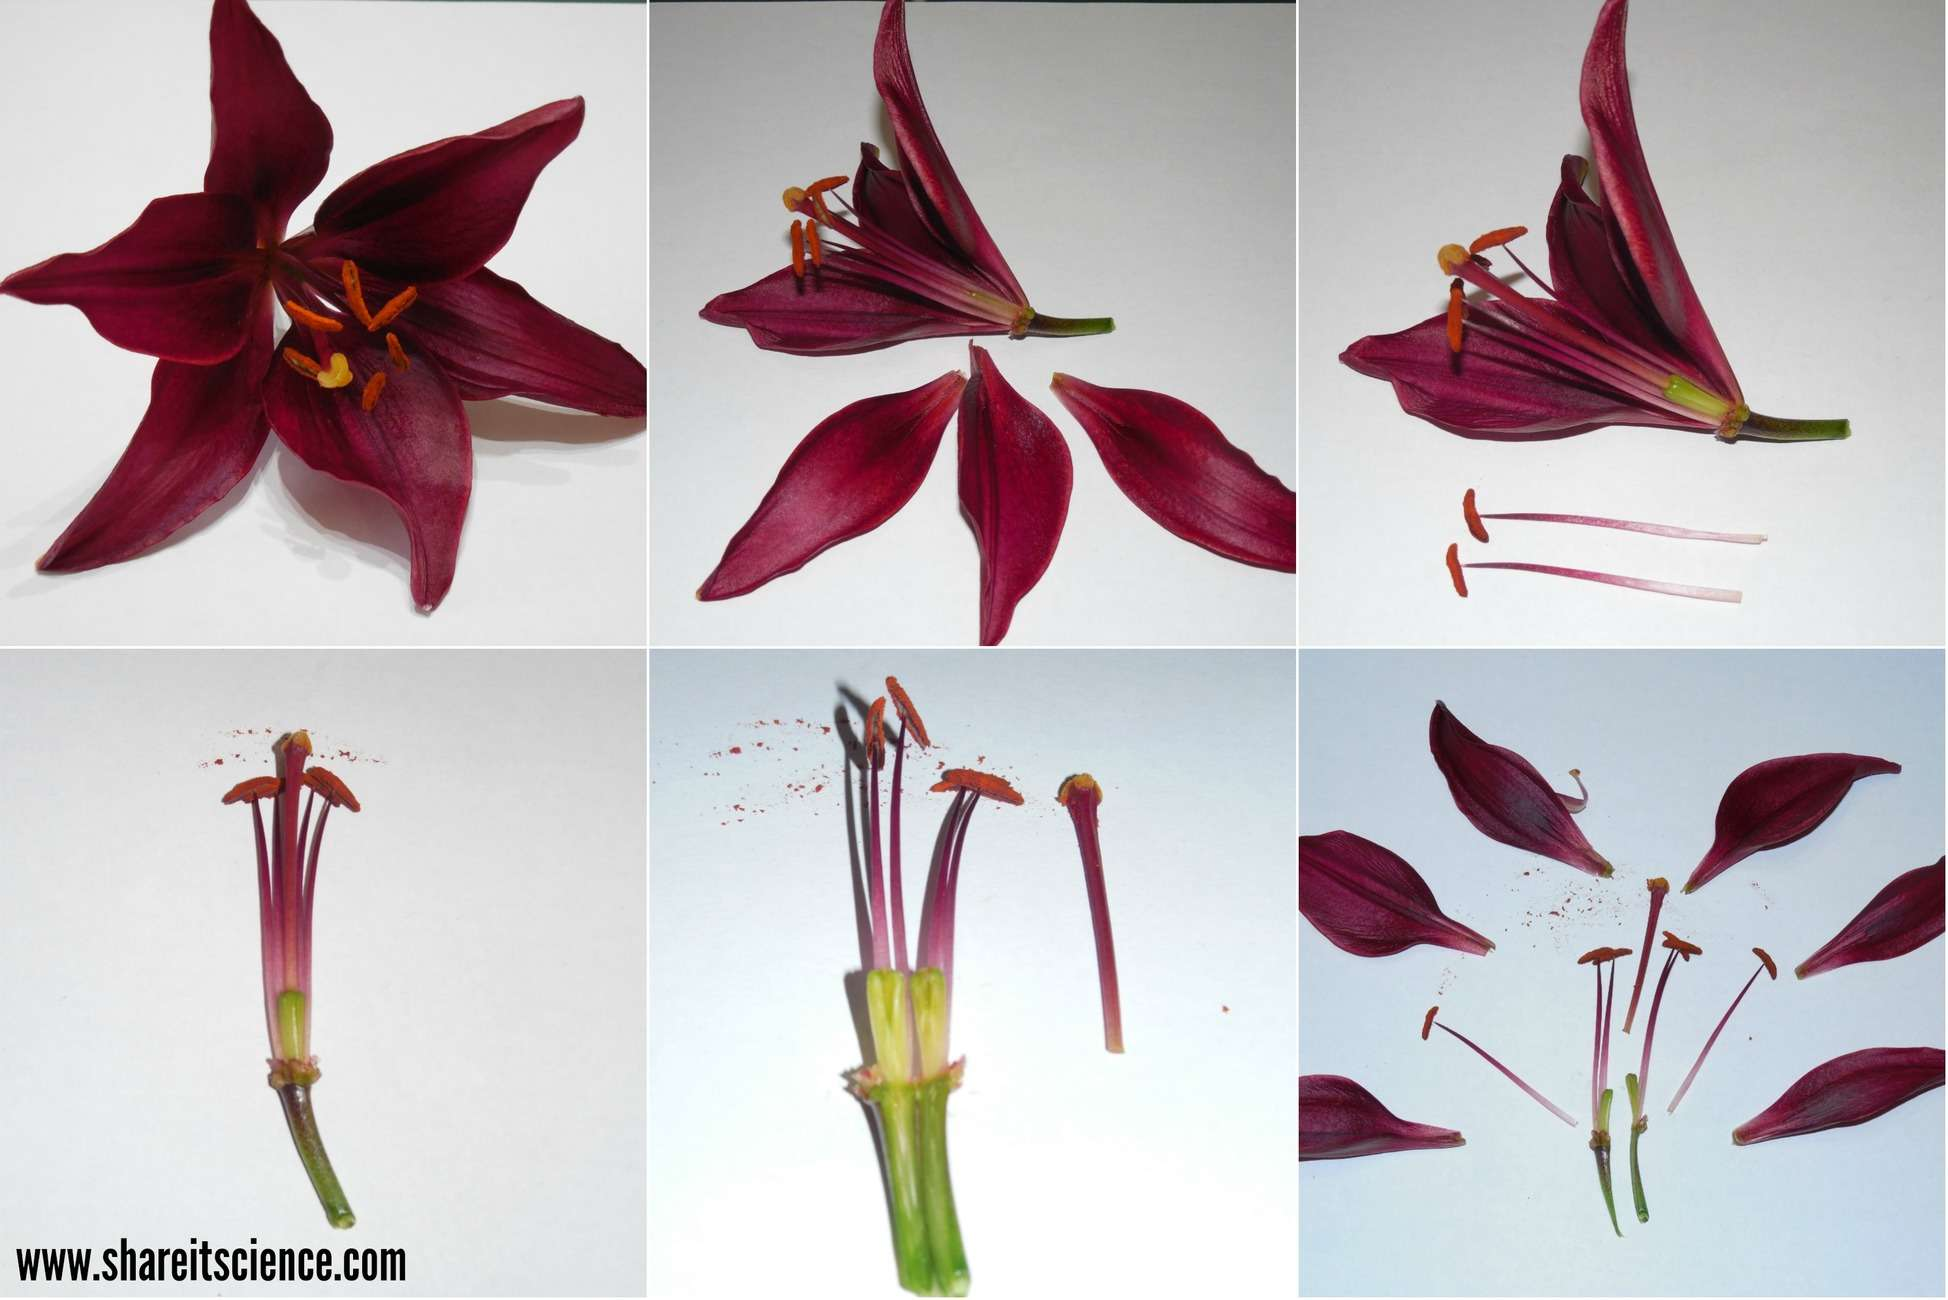 shareitscience_HS-flower-dissection (1)